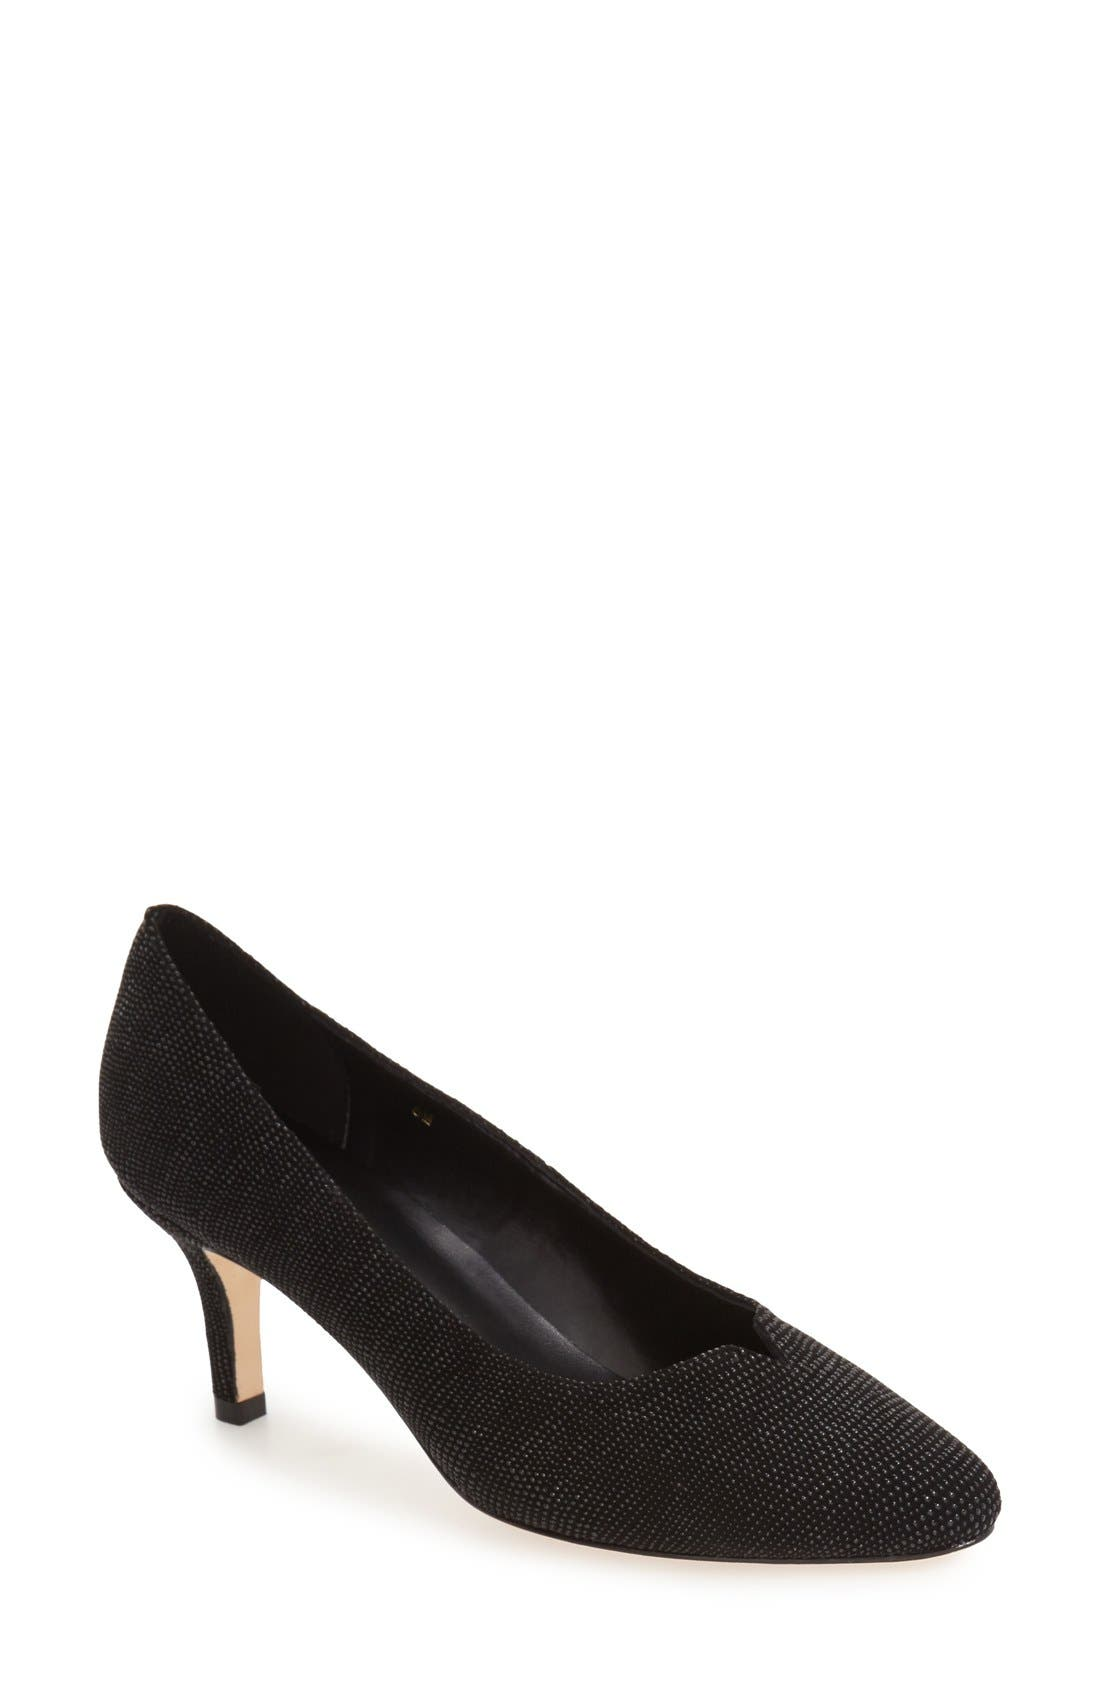 'Linden' Almond Toe Pump,                         Main,                         color, 001